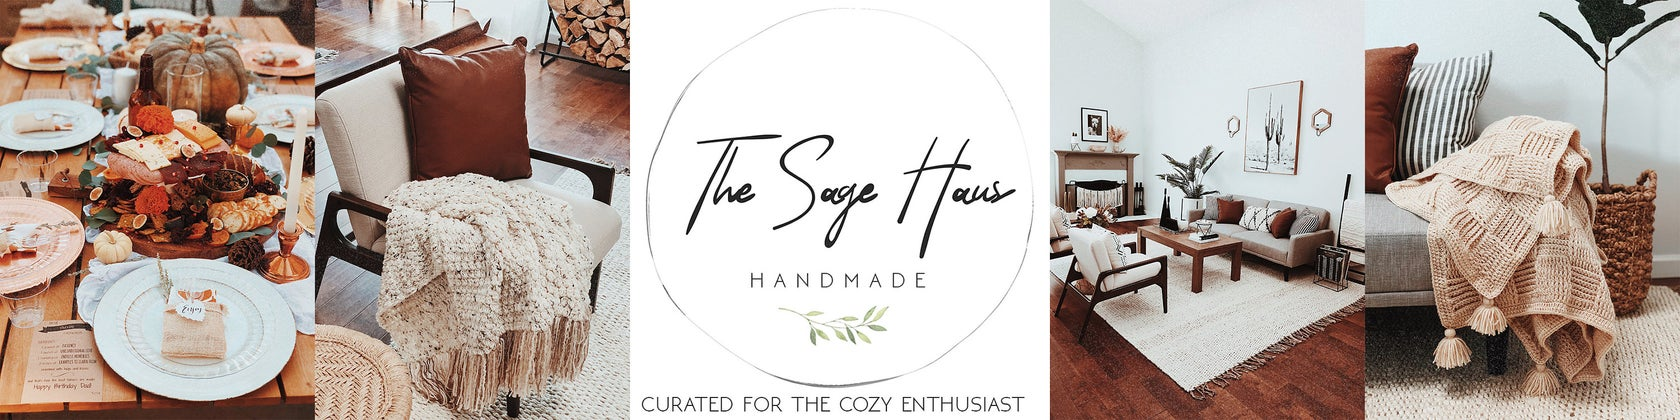 The Sage House - Handmade Home Decor including tassel garlands and beaded garlands